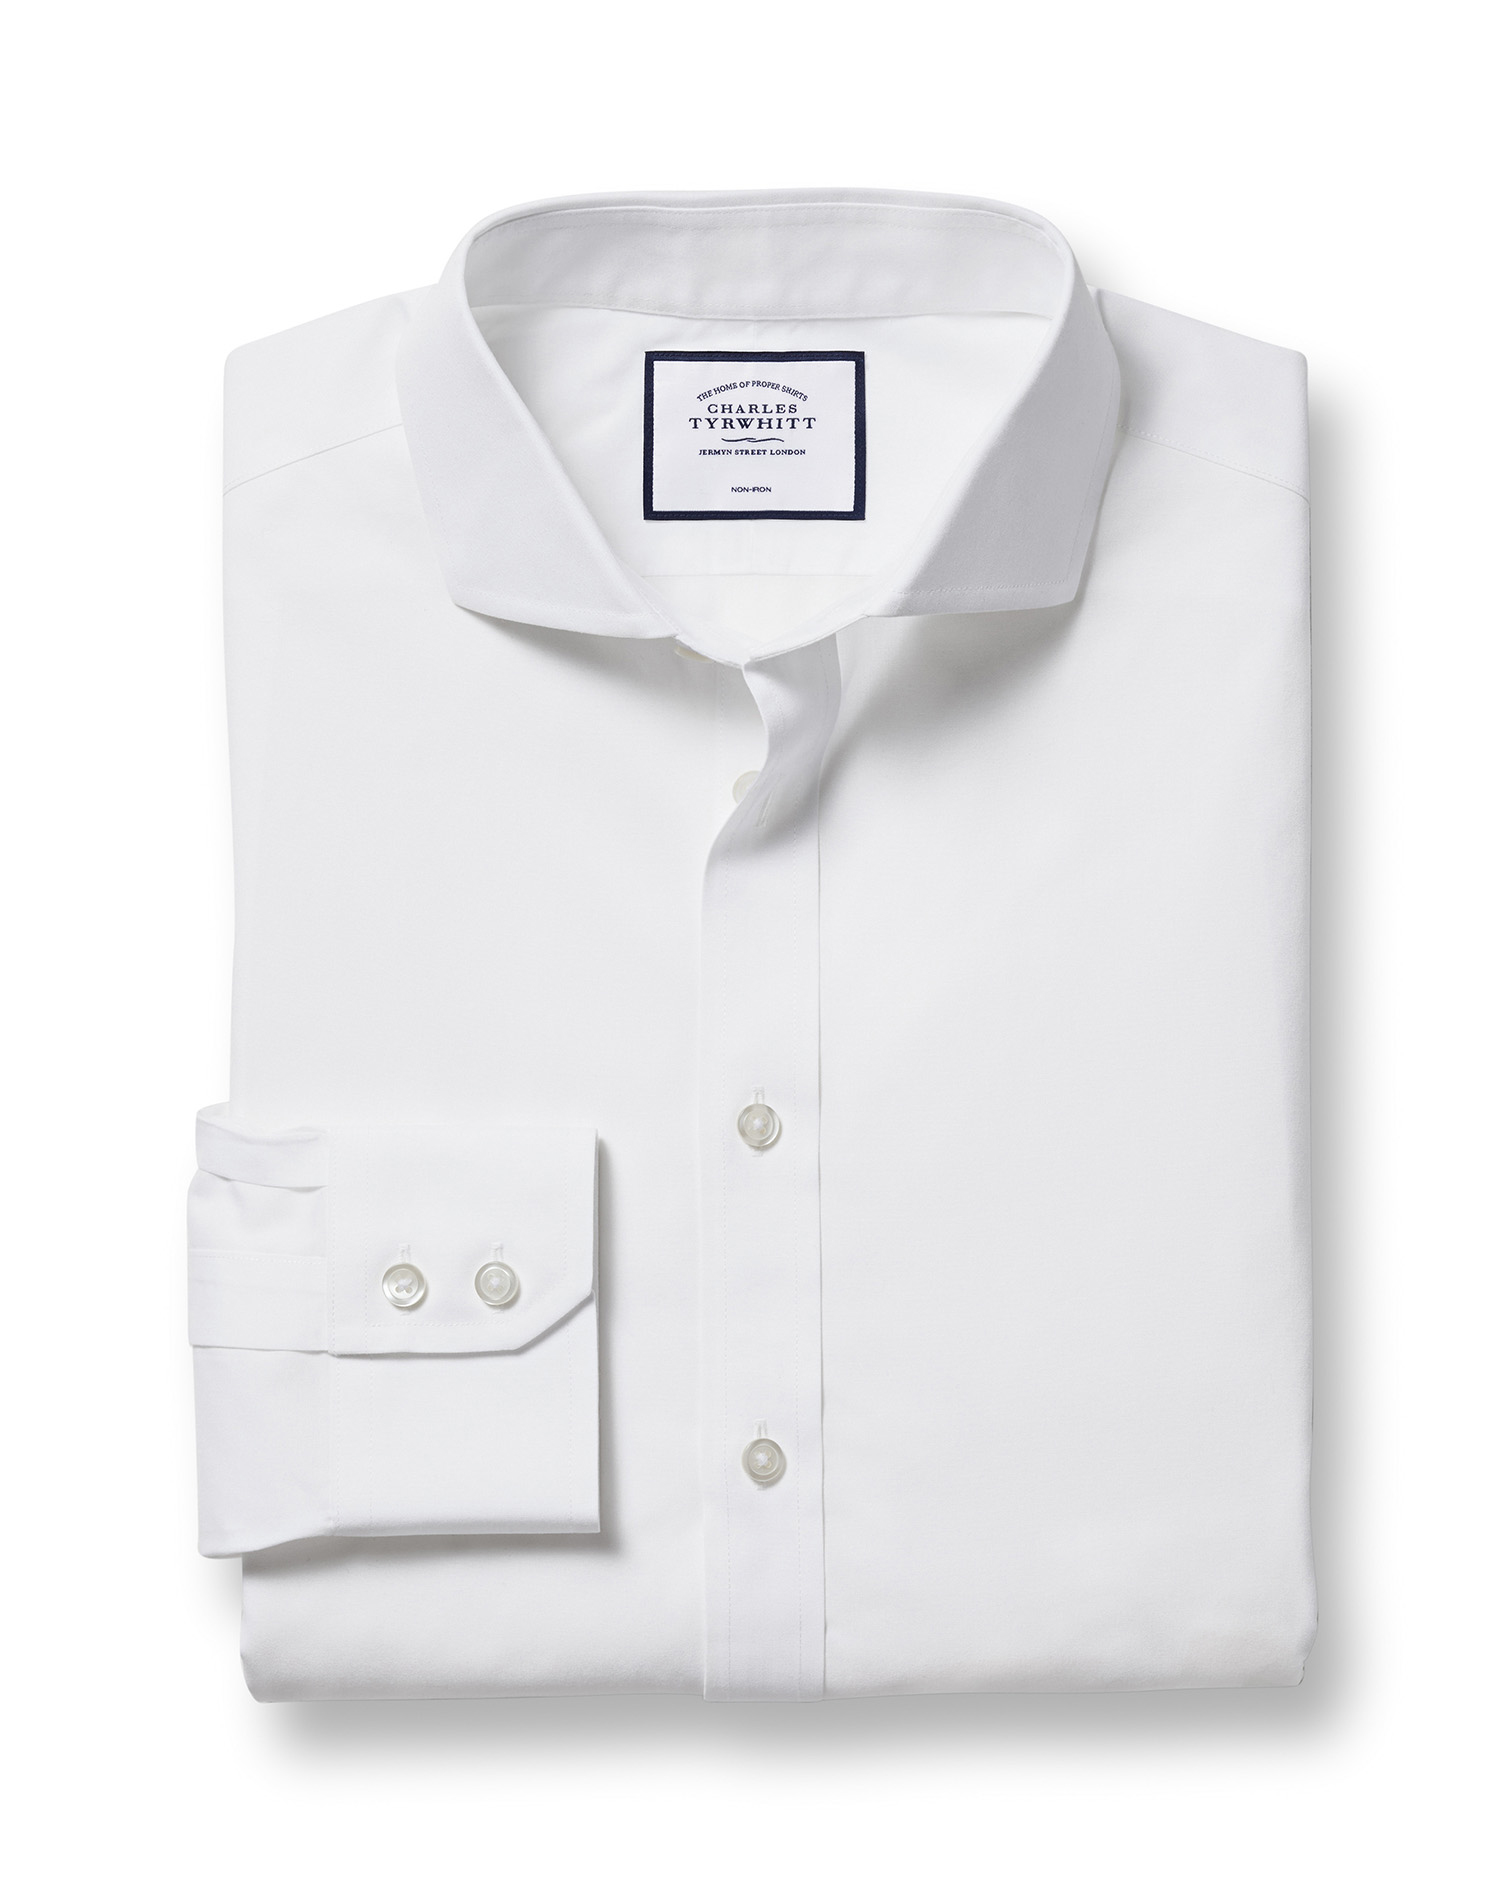 Classic Fit Cutaway Non-Iron Poplin White Cotton Formal Shirt Single Cuff Size 18/38 by Charles Tyrw